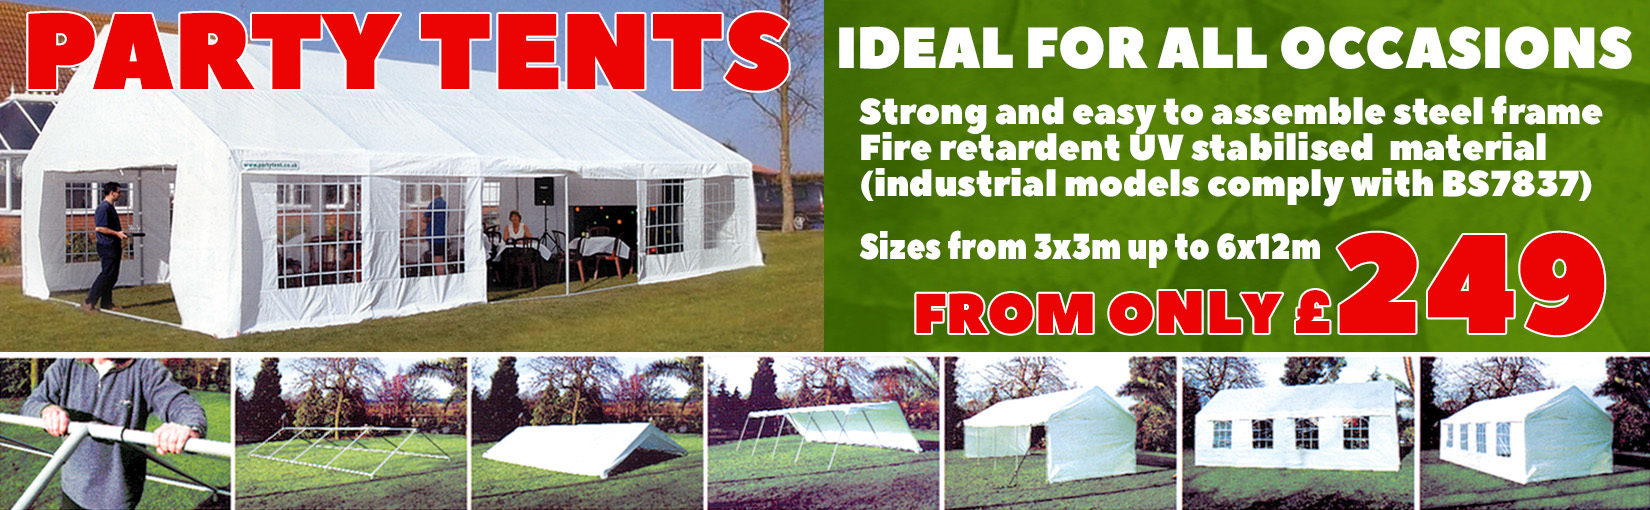 1650X510Partytents